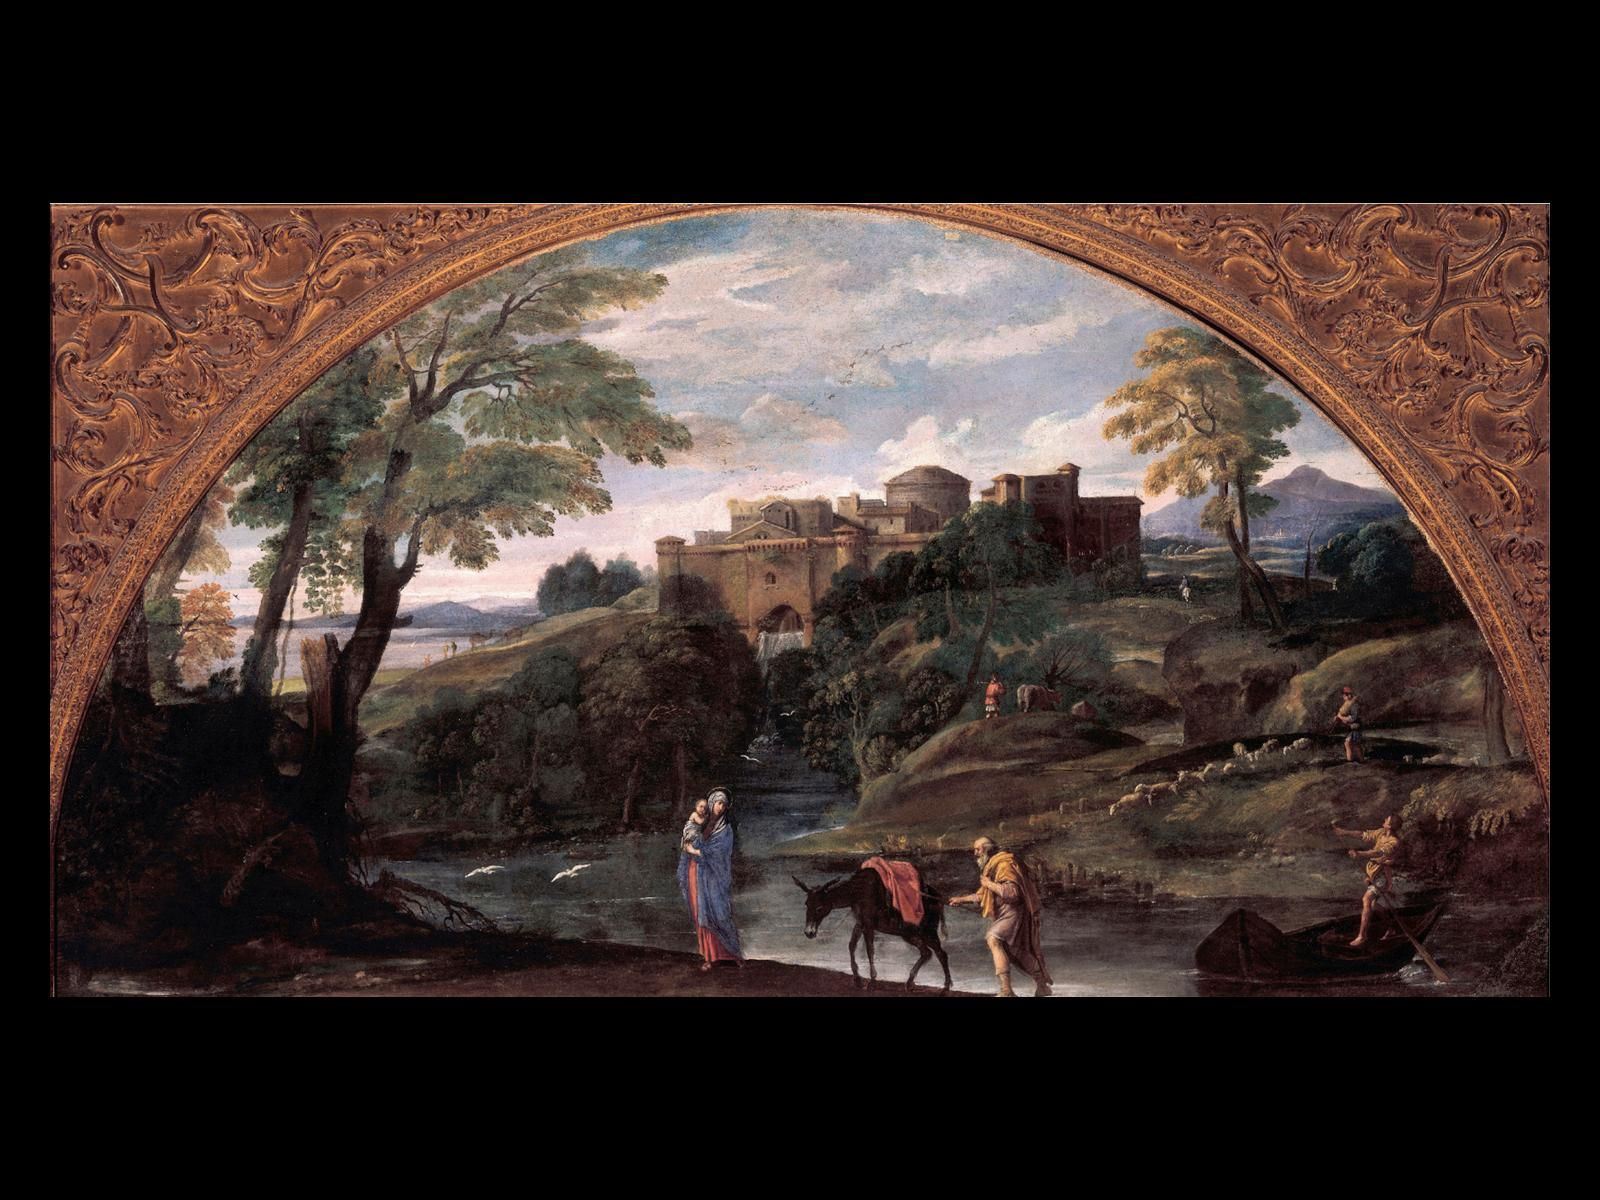 "Annibale Carracci, Flight into Egypt, 1603-1604. Oil on canvas, 4' x 7' 6"". Galleria Doria Pamphili, Rome."